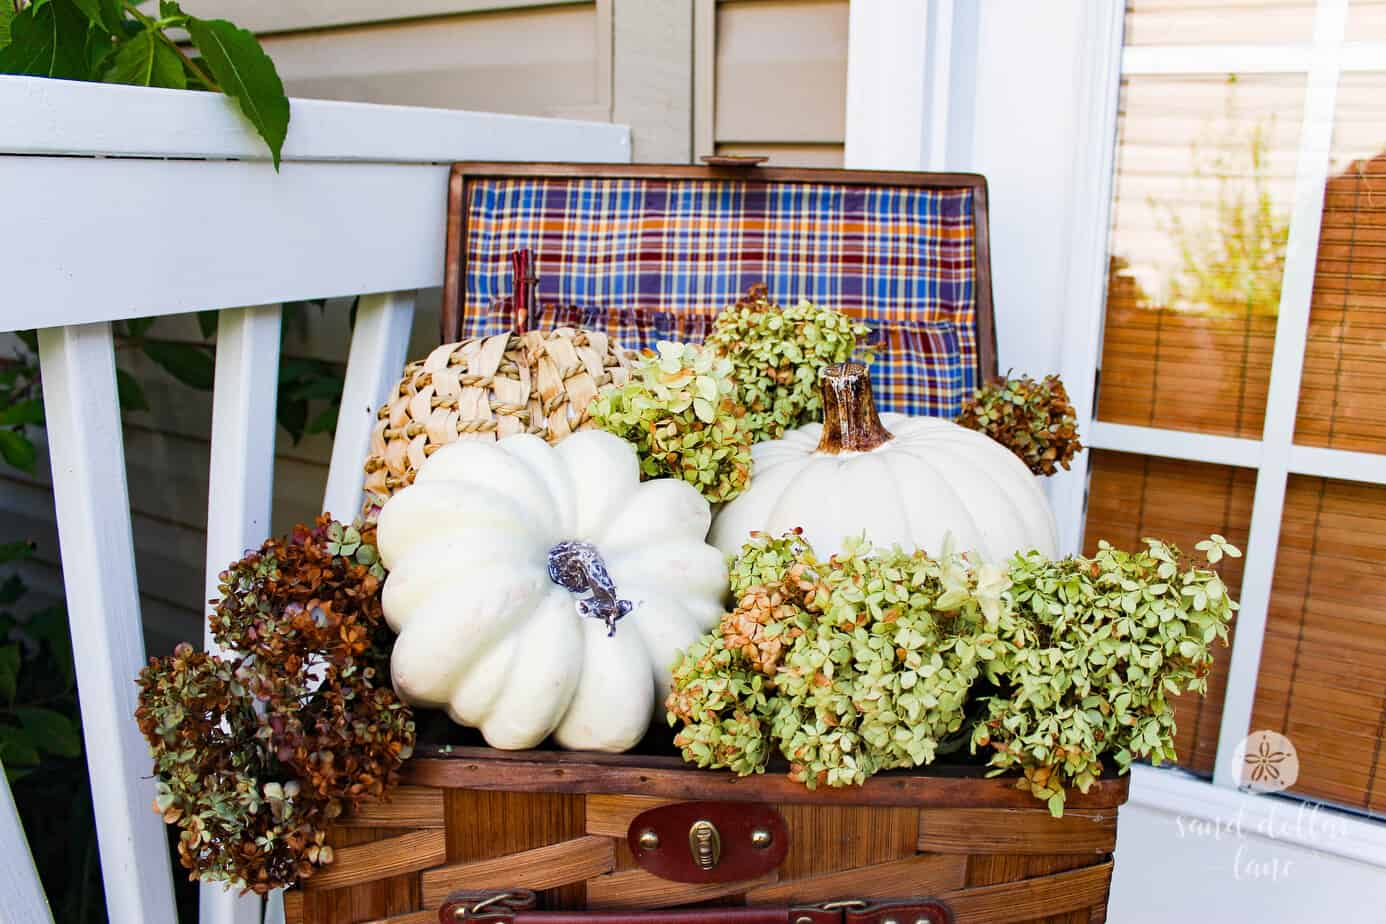 How To Decorate A Small Porch For Fall Sand Dollar Lane